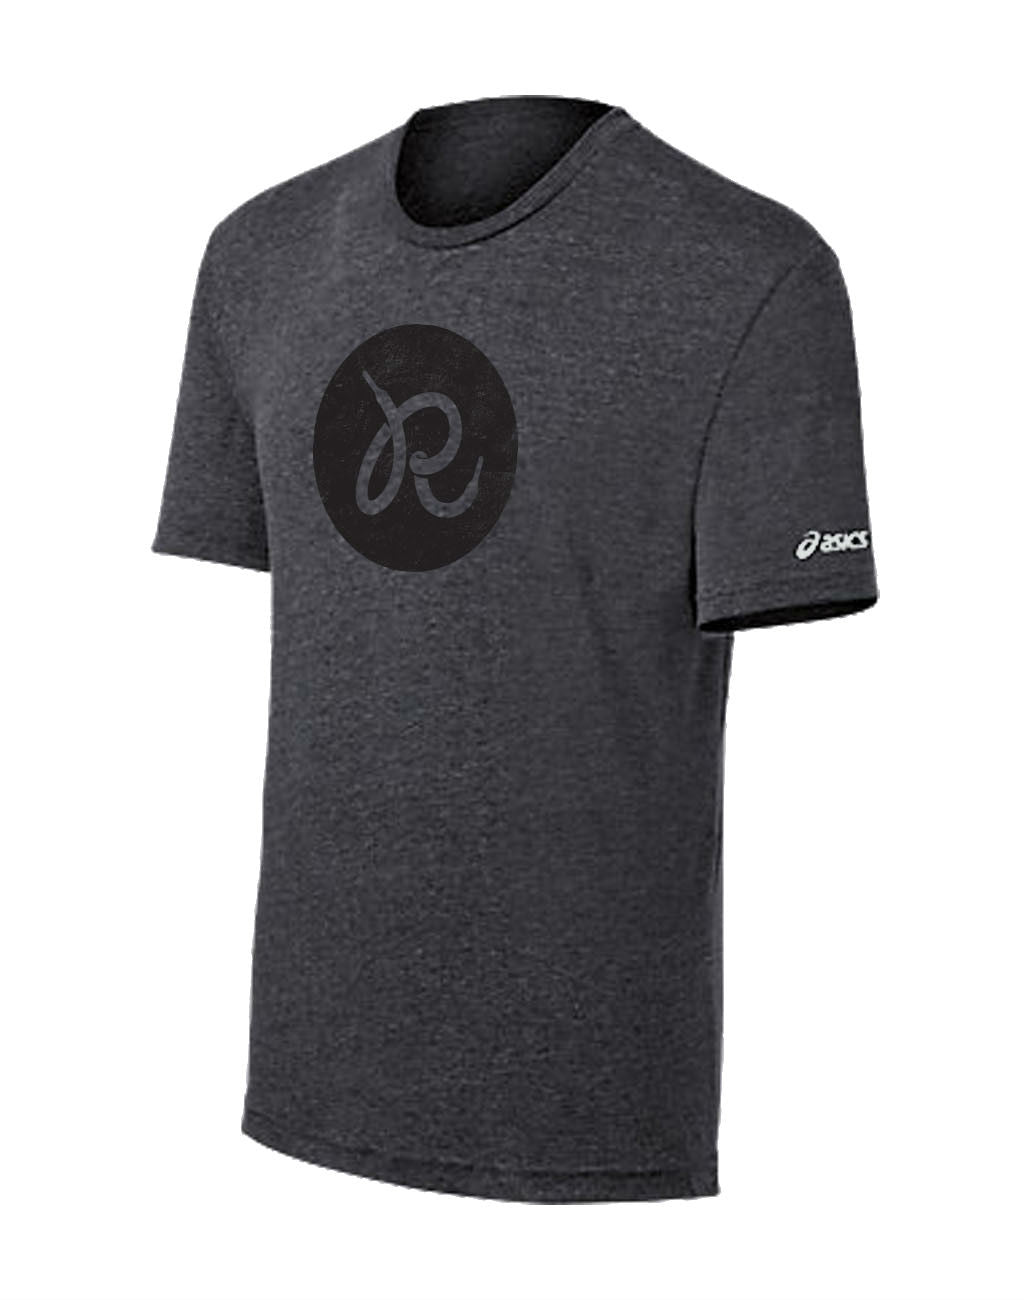 Runkeeper Signature Tee (Women's)Charcoal Heather_master_image